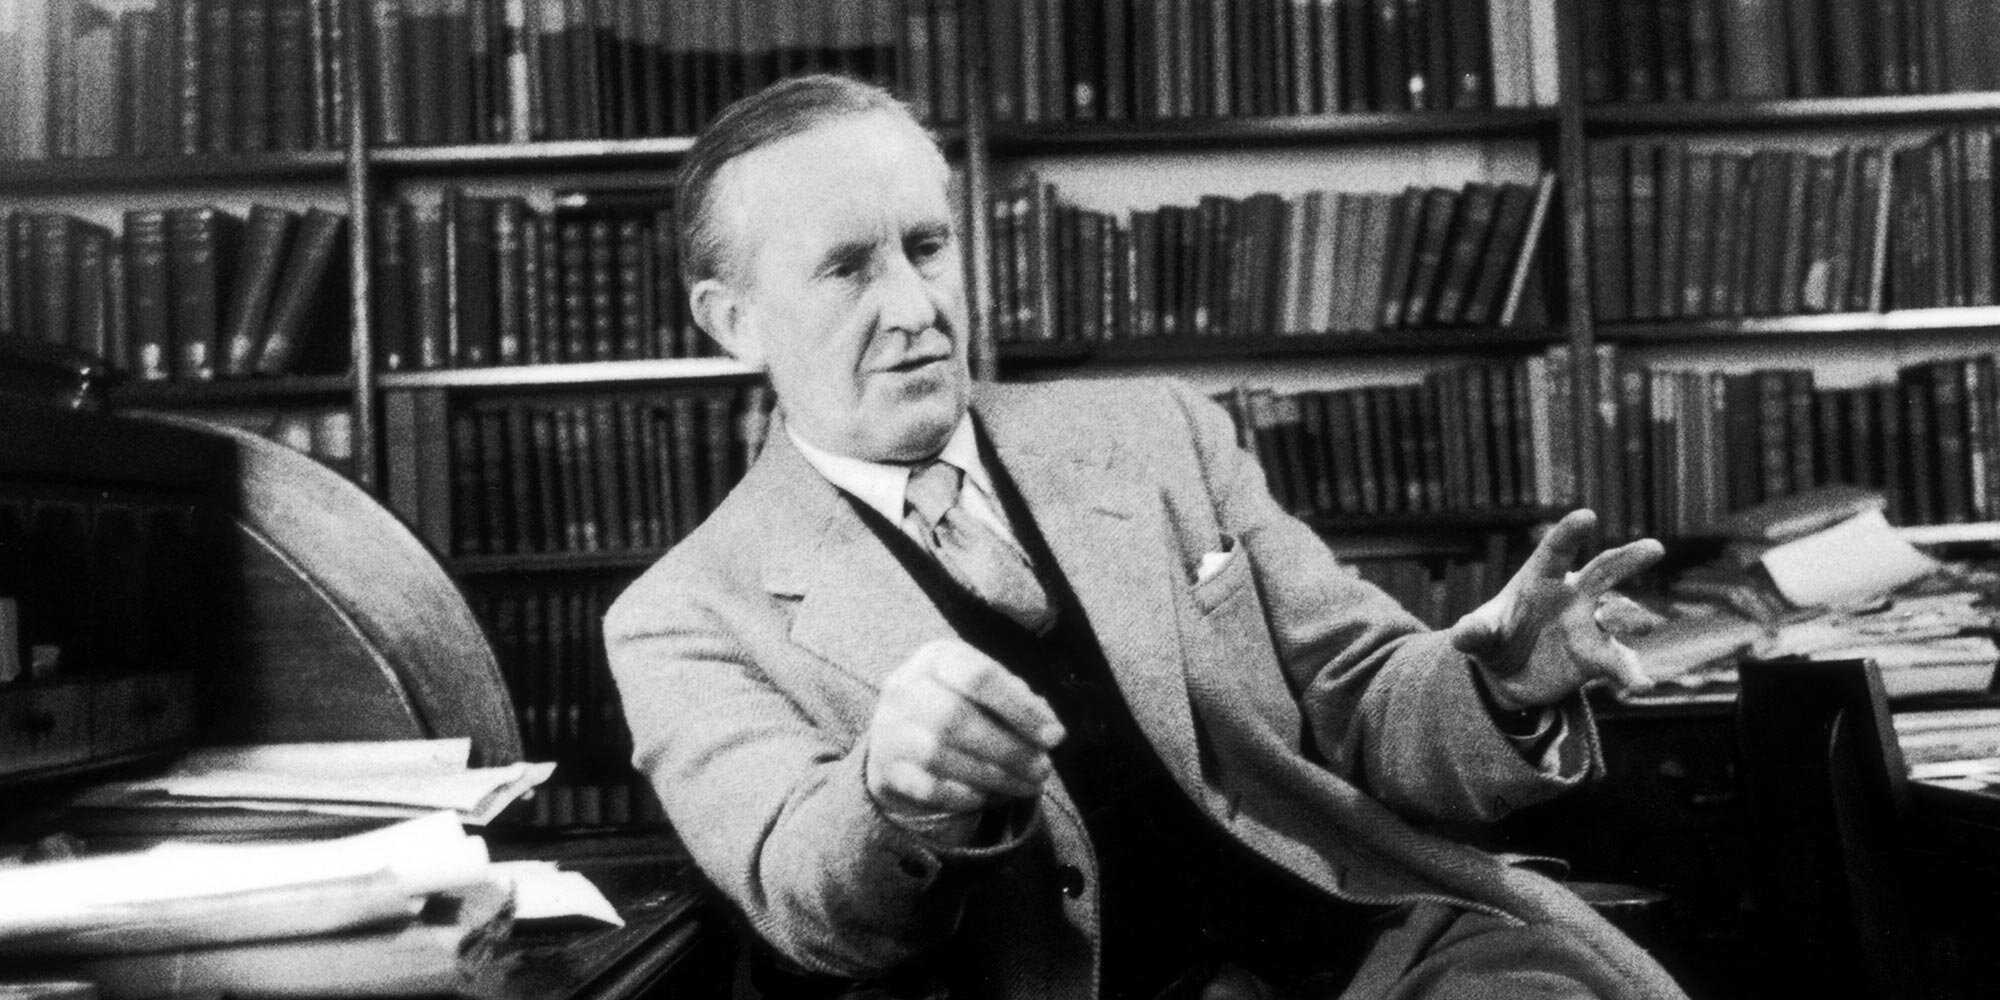 For the first time, new edition of 'Lord of the Rings' will include J.R.R. Tolkien's own art